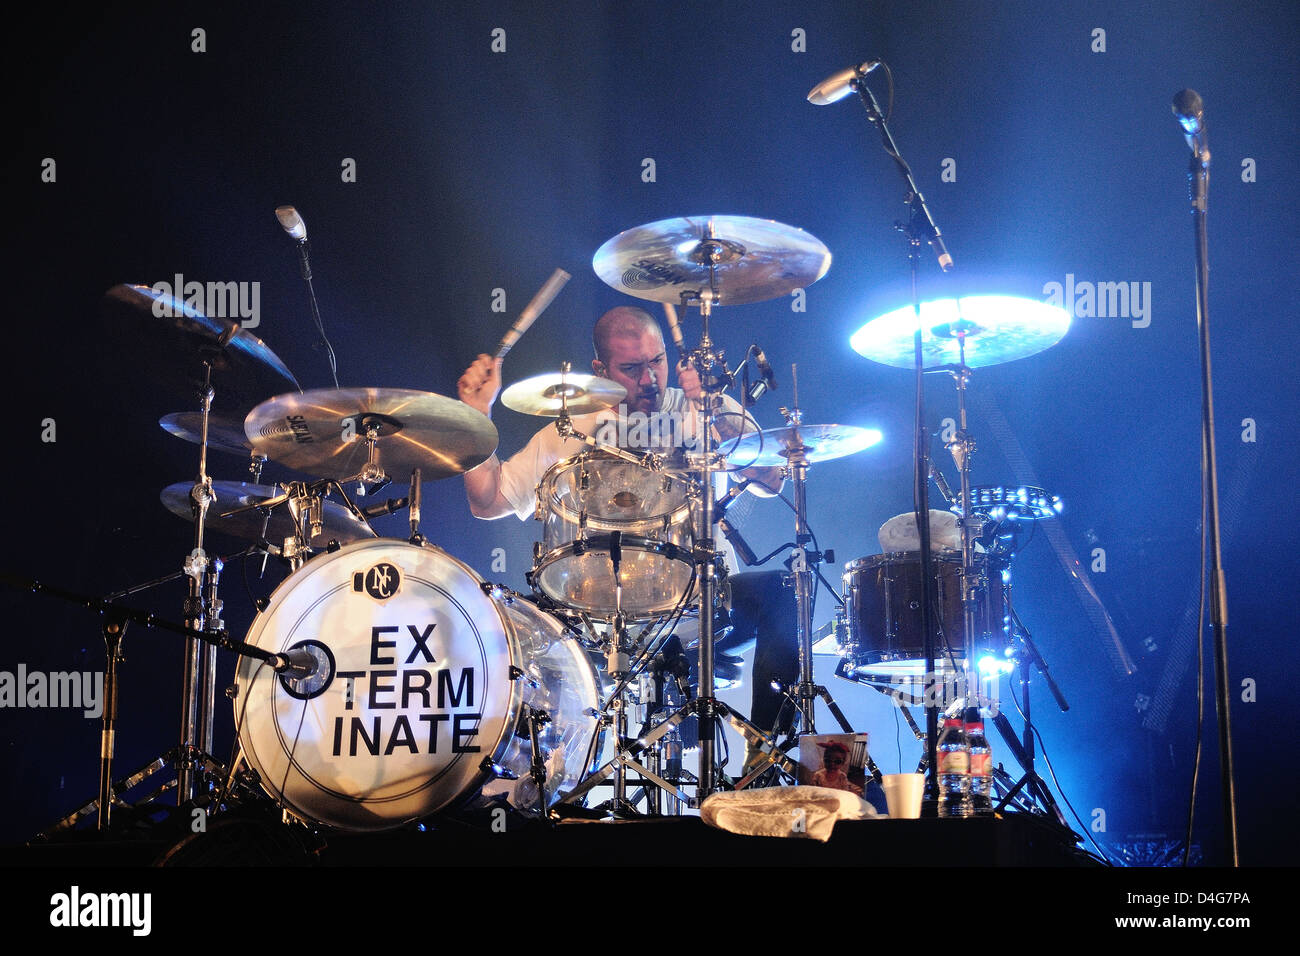 BARCELONA, SPAIN - MAR 5:: Baterist of My Chemical Romance band, performs at Sant Jordi Club on March 5, 2011 in - Stock Image